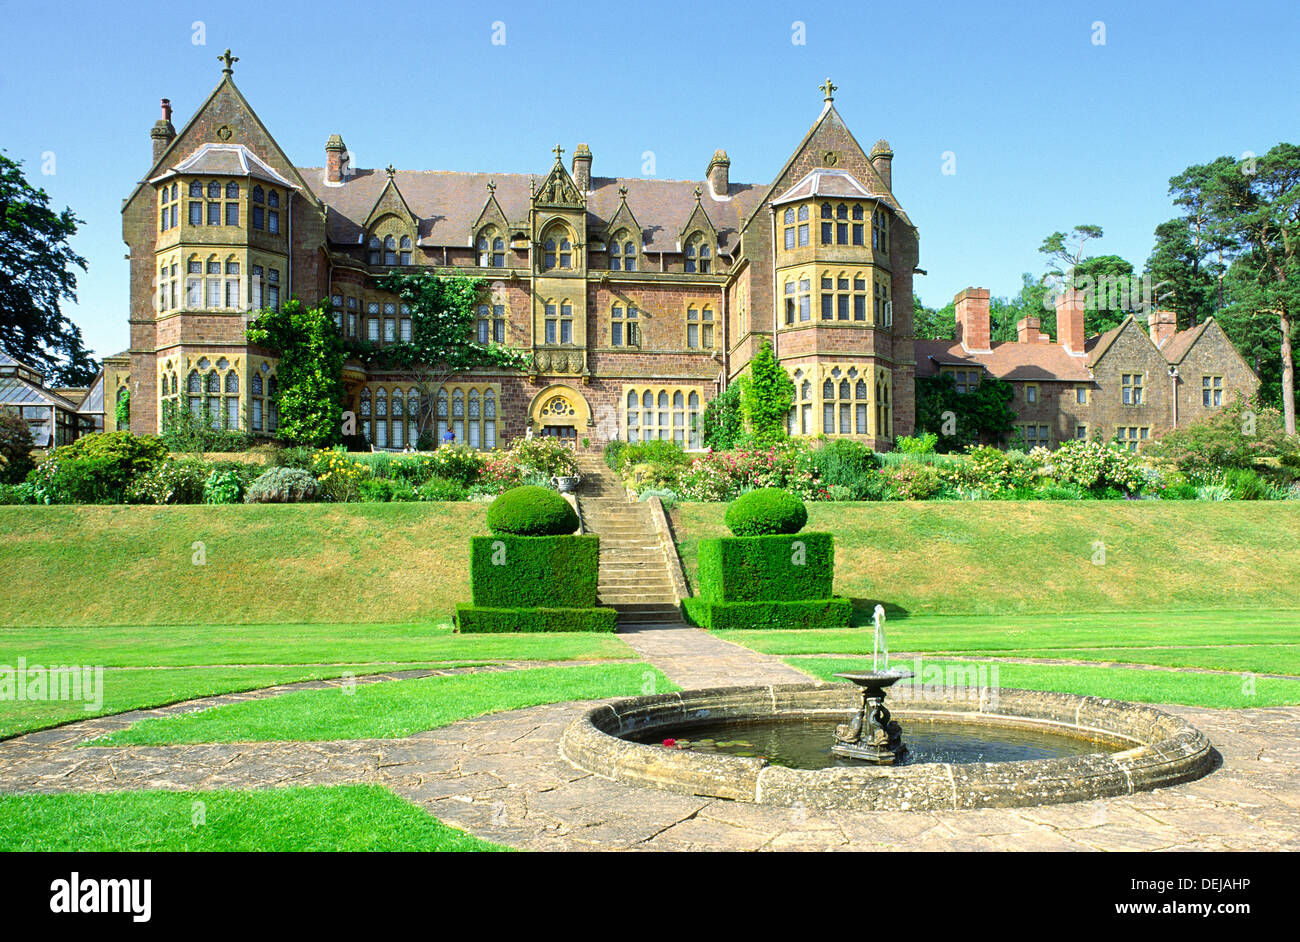 Knightshayes Court. Victorian country house near Tiverton, Devon, England. Home of the Heathcoat-Amory family now open to public - Stock Image